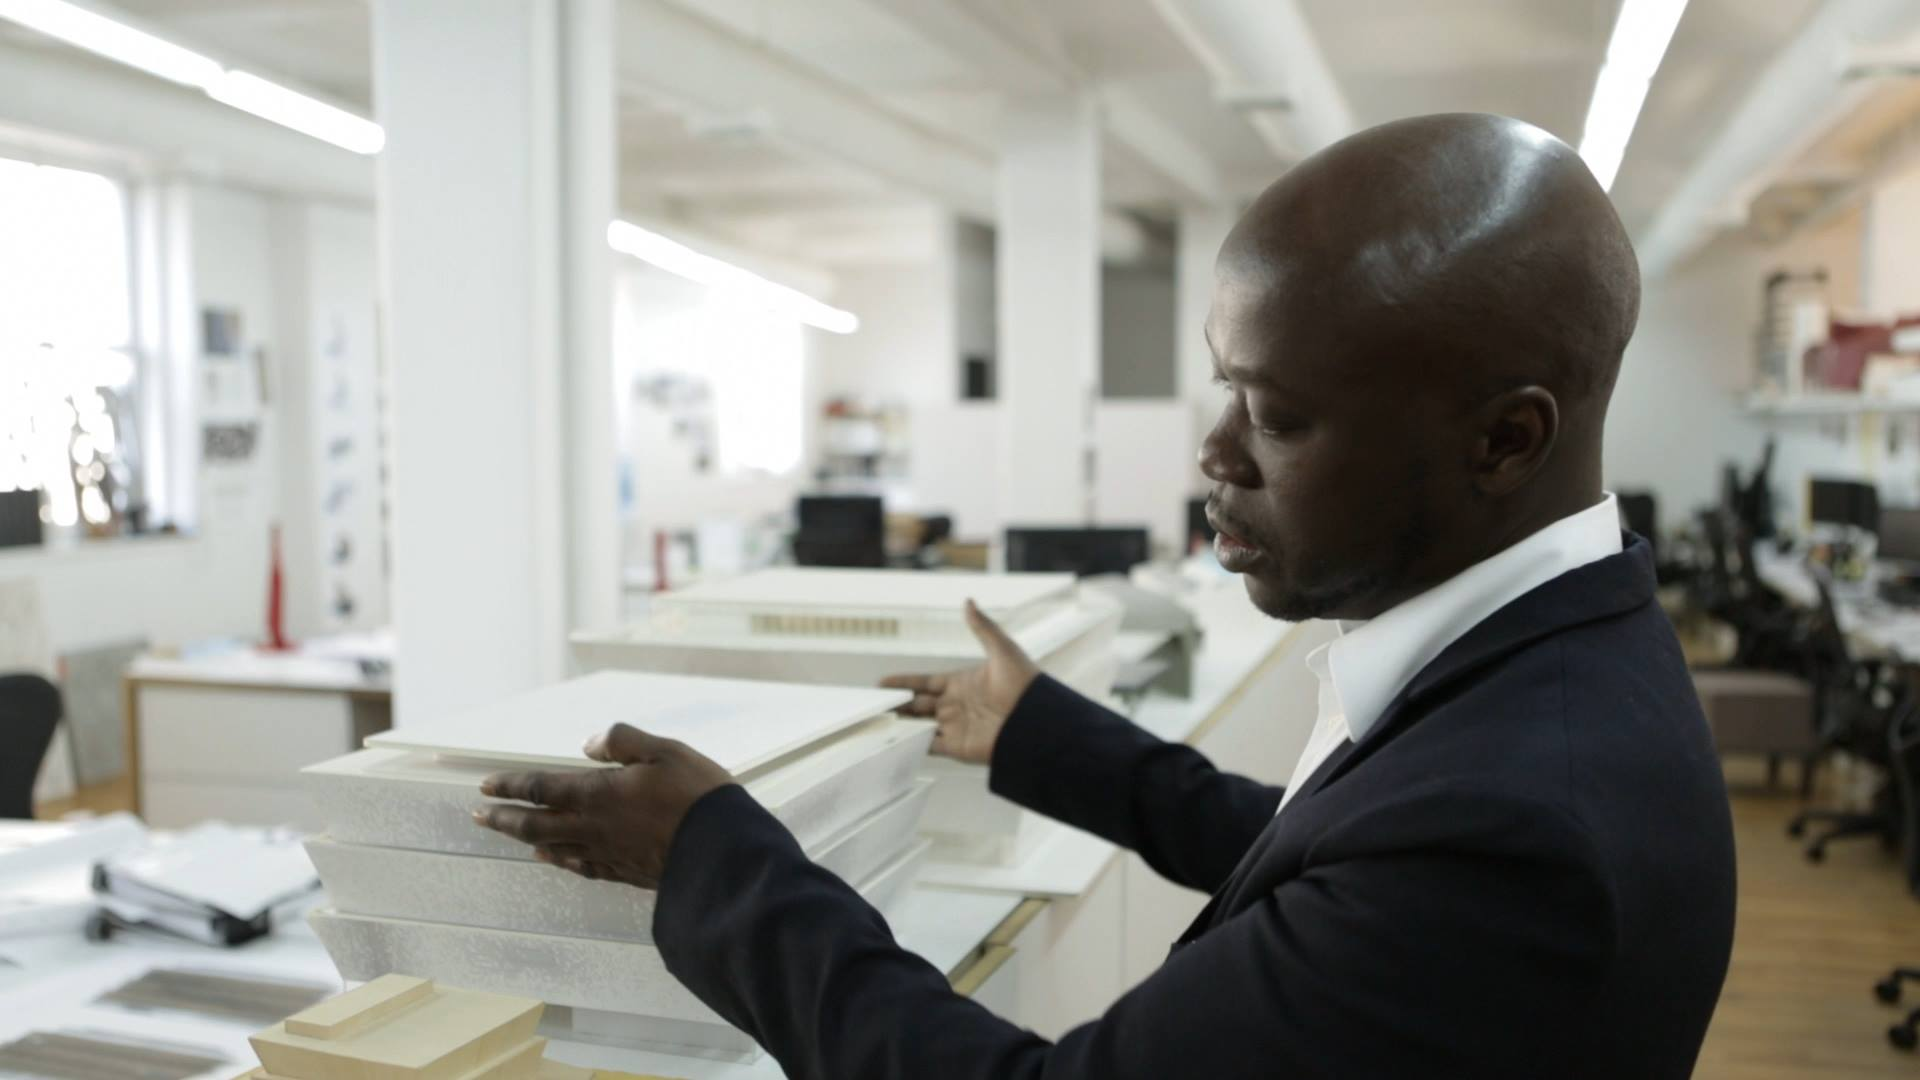 David Adjaye arranging a stack of white blocks on a table with offices in background